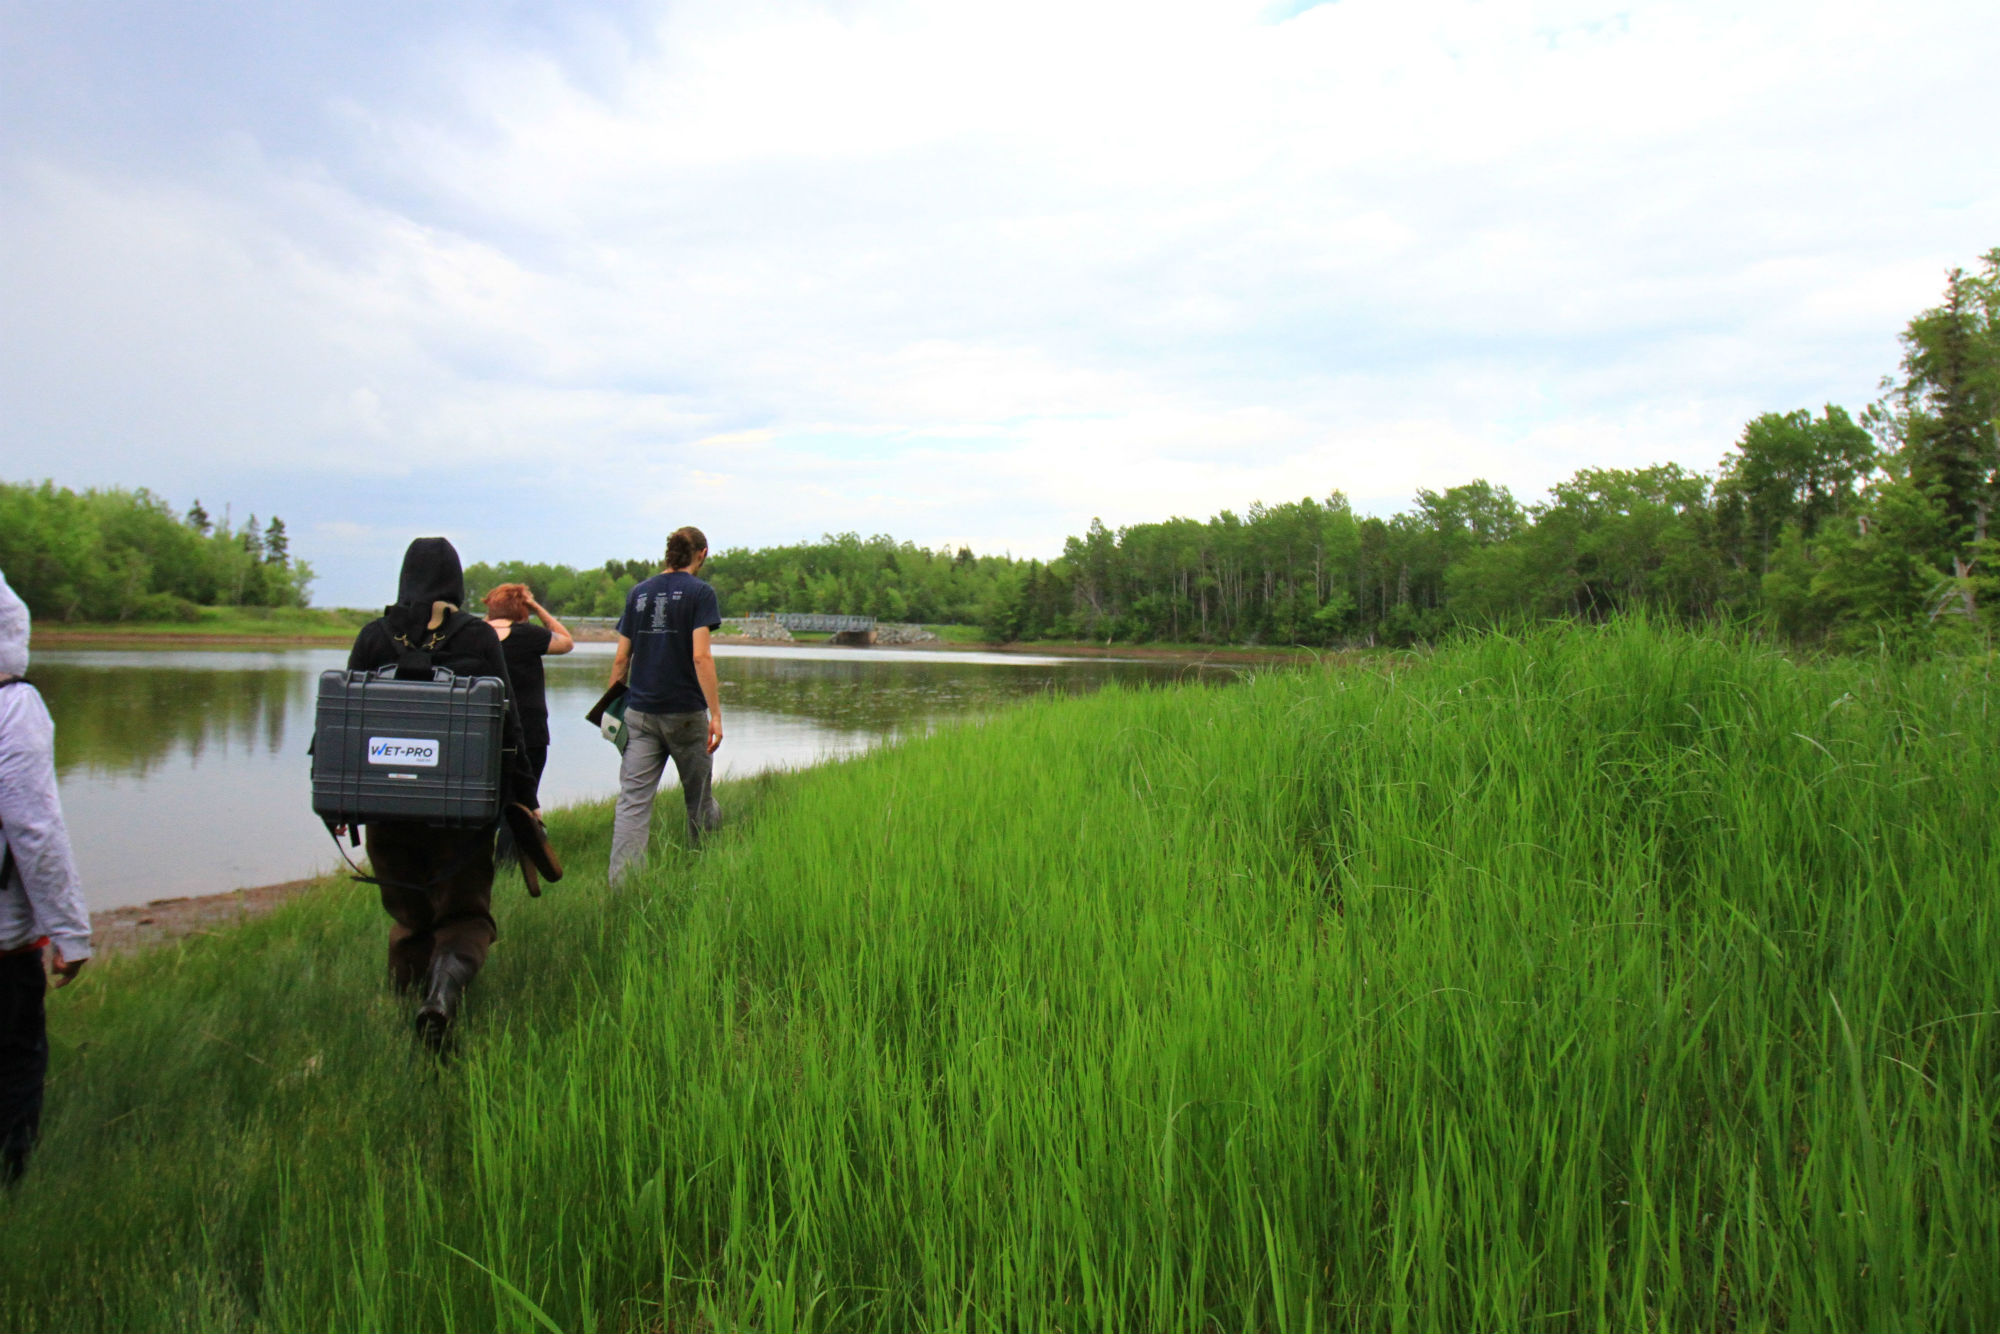 Volunteers Walking to Monitoring Location in Pictou, Nova Scotia. © Oliver Woods